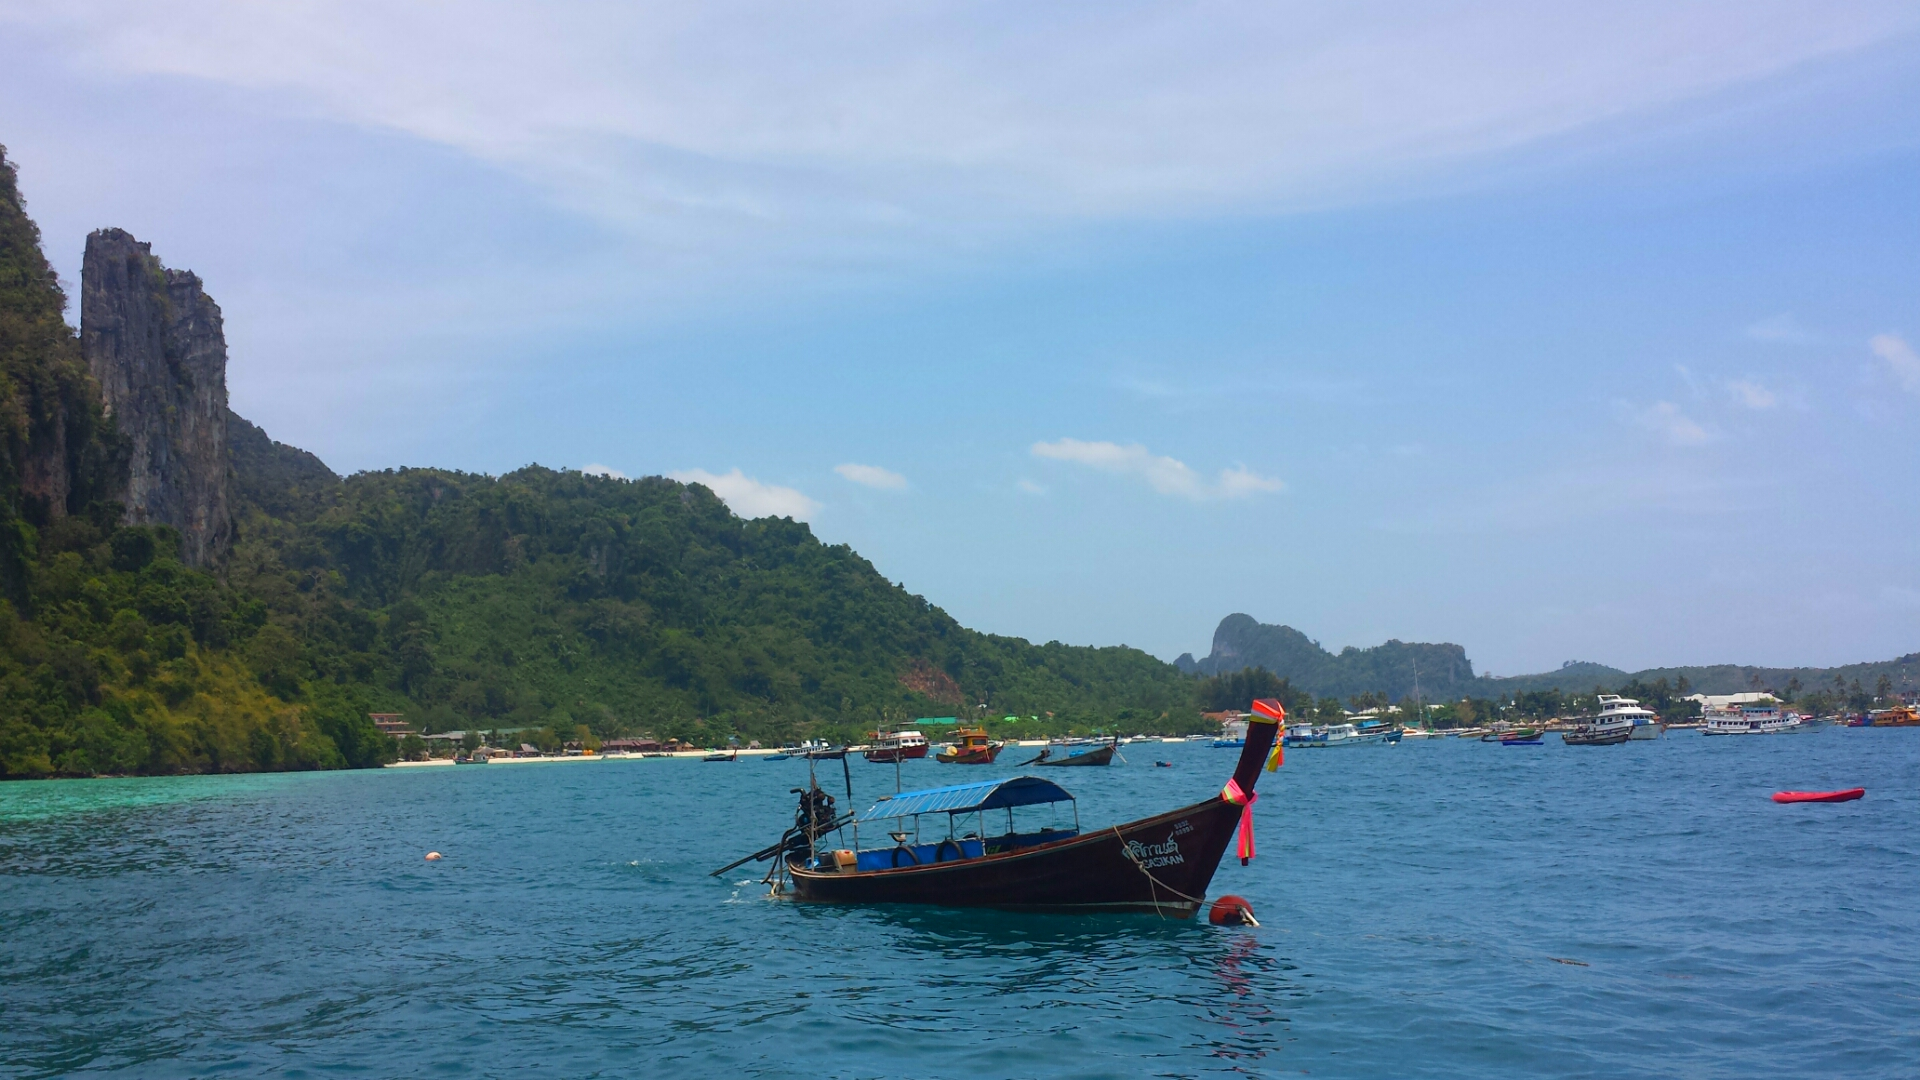 Phi_Phi_Don_Islands_Phuket_Thailand